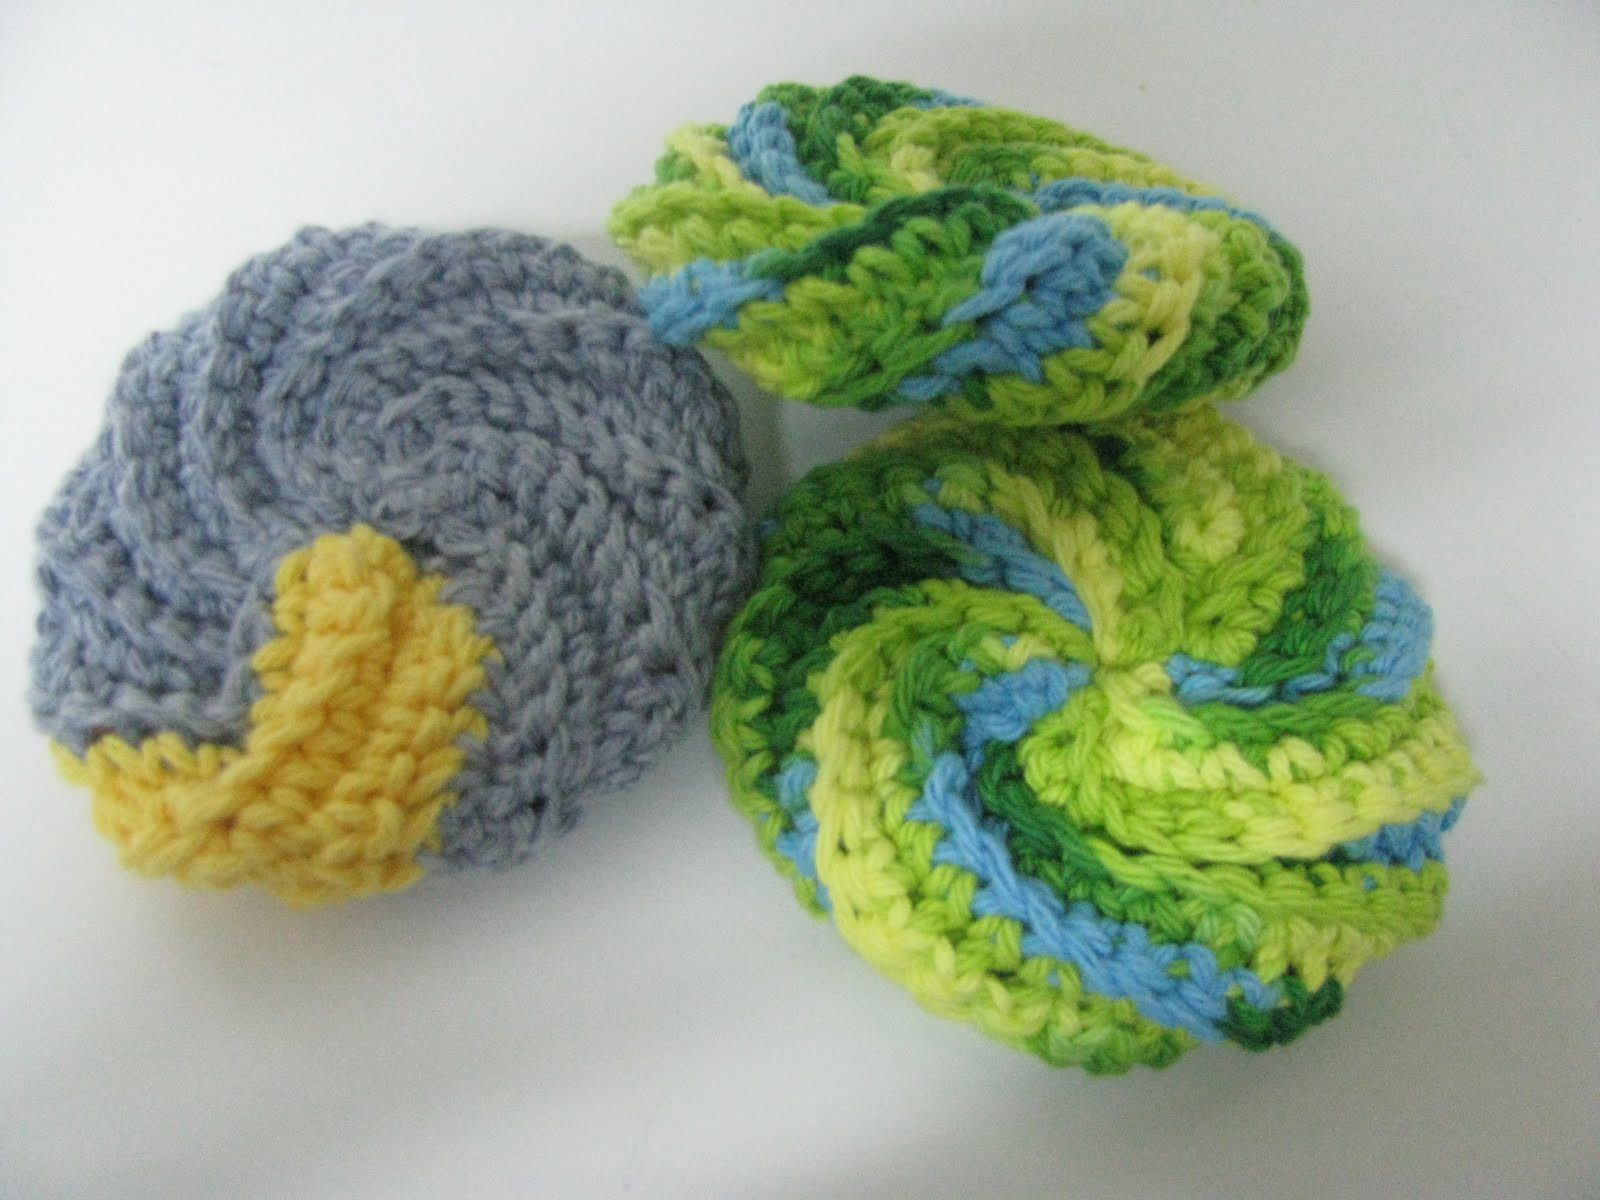 Crochet Patterns With Cotton Yarn : COTTON CROCHET PATTERN YARN Crochet Patterns